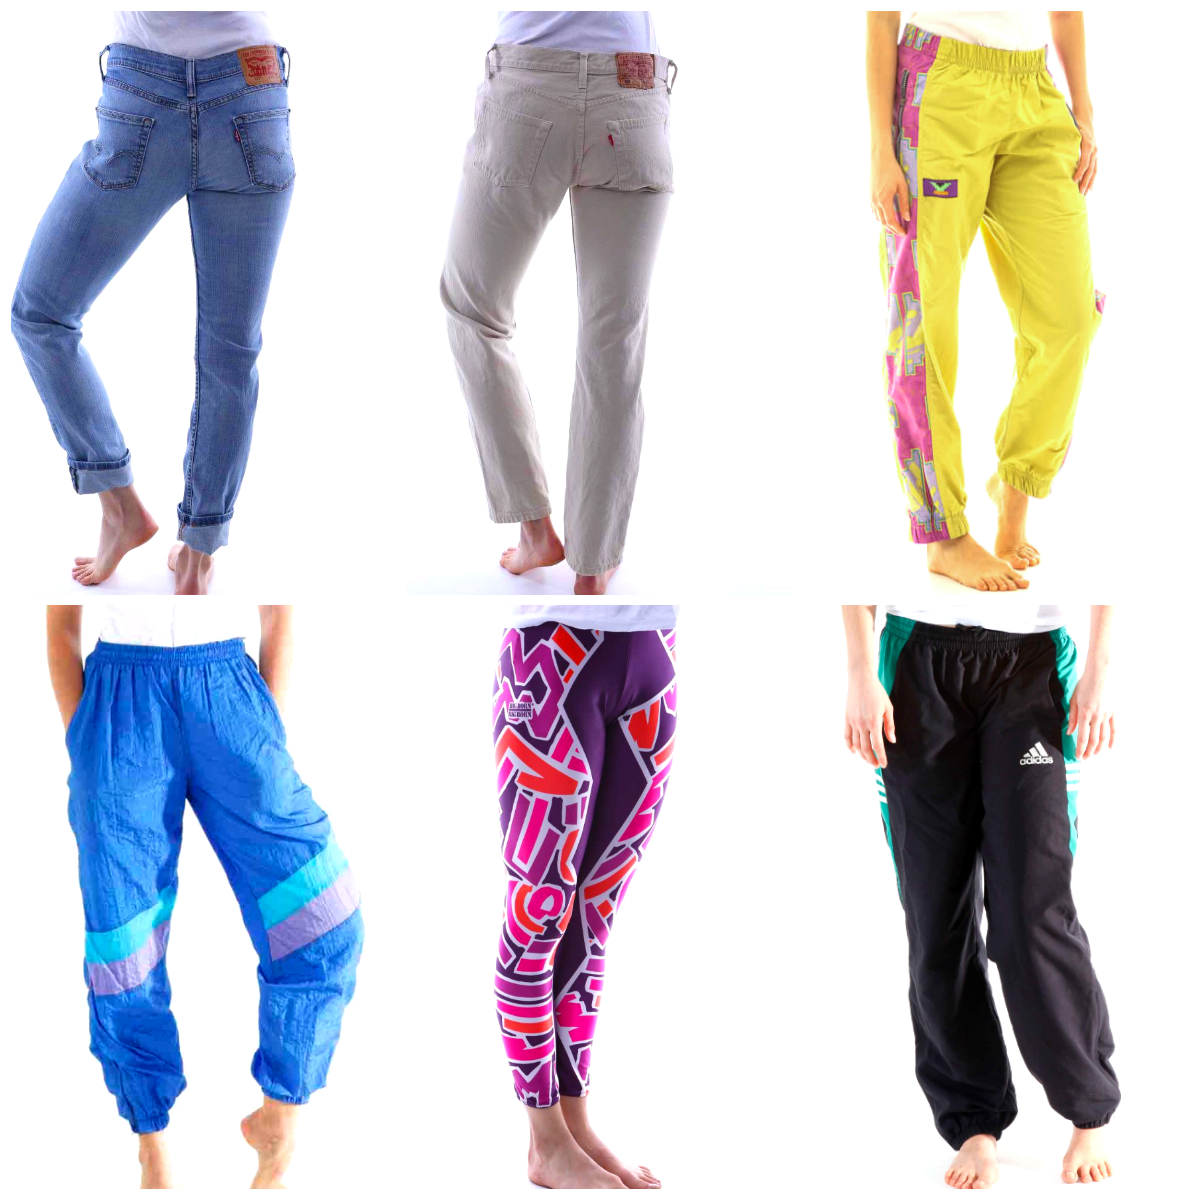 Trousers Categories Pic.jpg